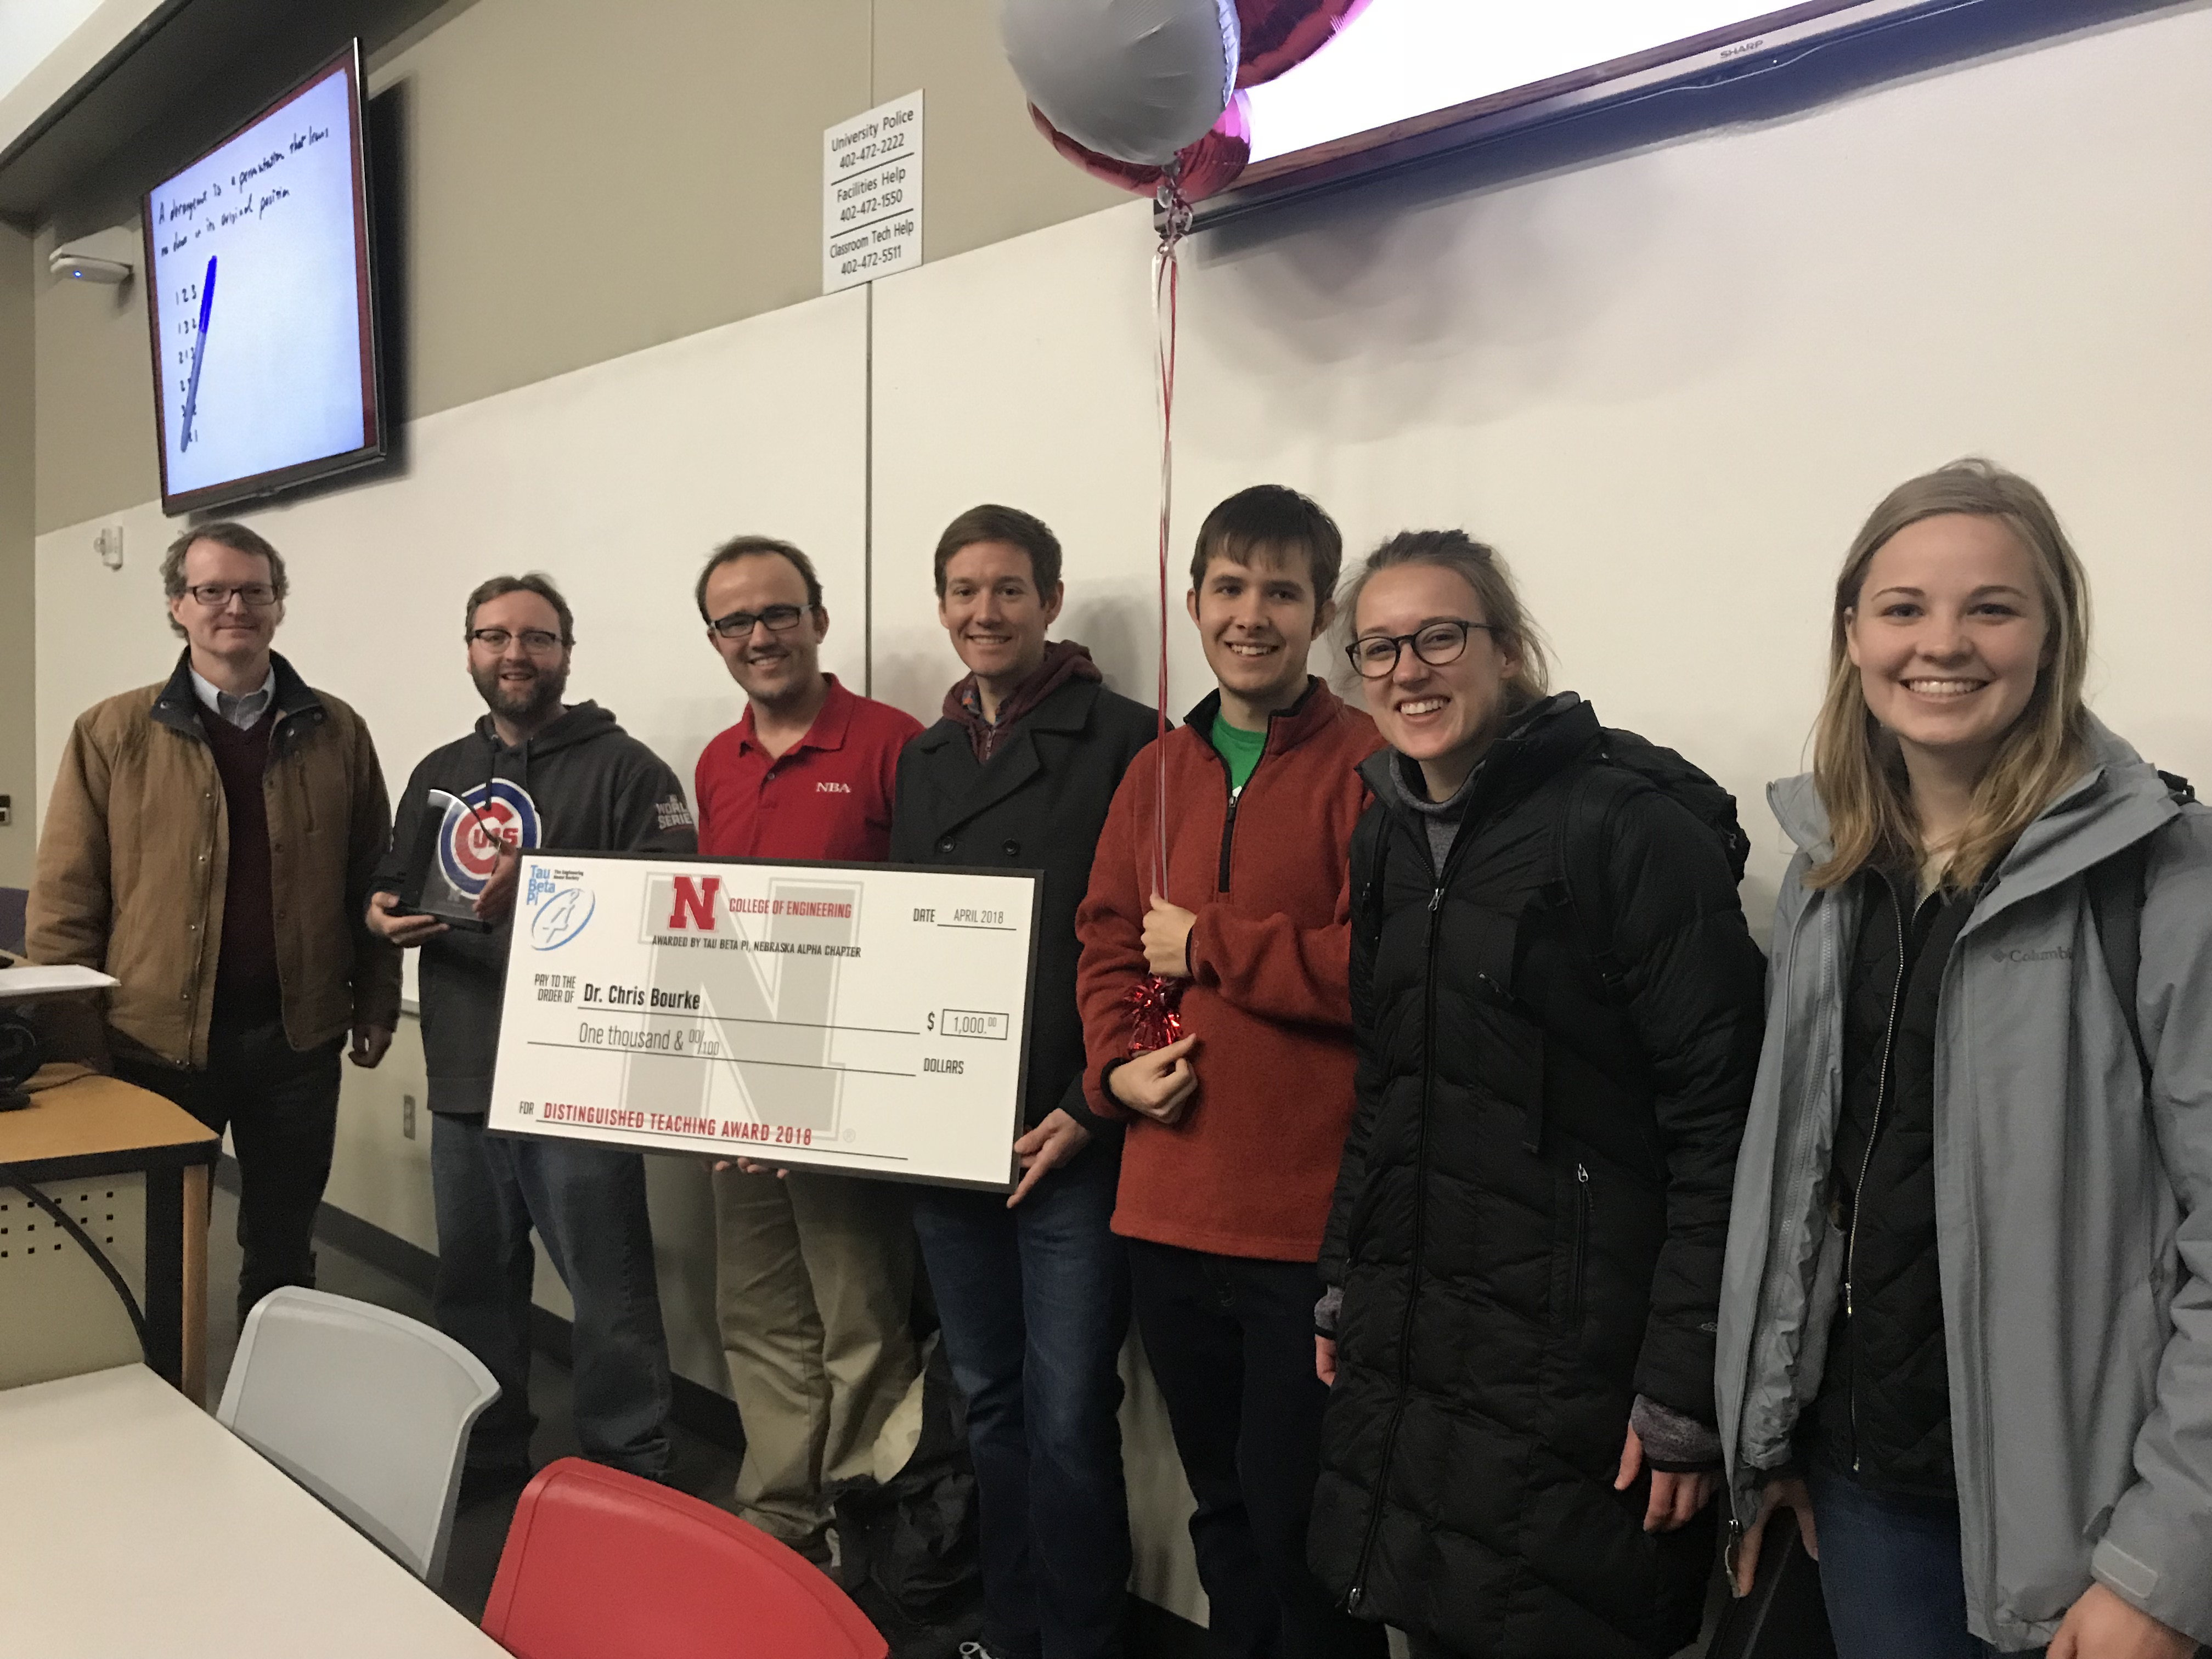 Department chair Matthew Dwyer and members of Tau Beta Pi presenting Chris Bourke with the 2018 Tau Beta Pi Distinguished Teaching Award on Tuesday during class in Brace Hall.